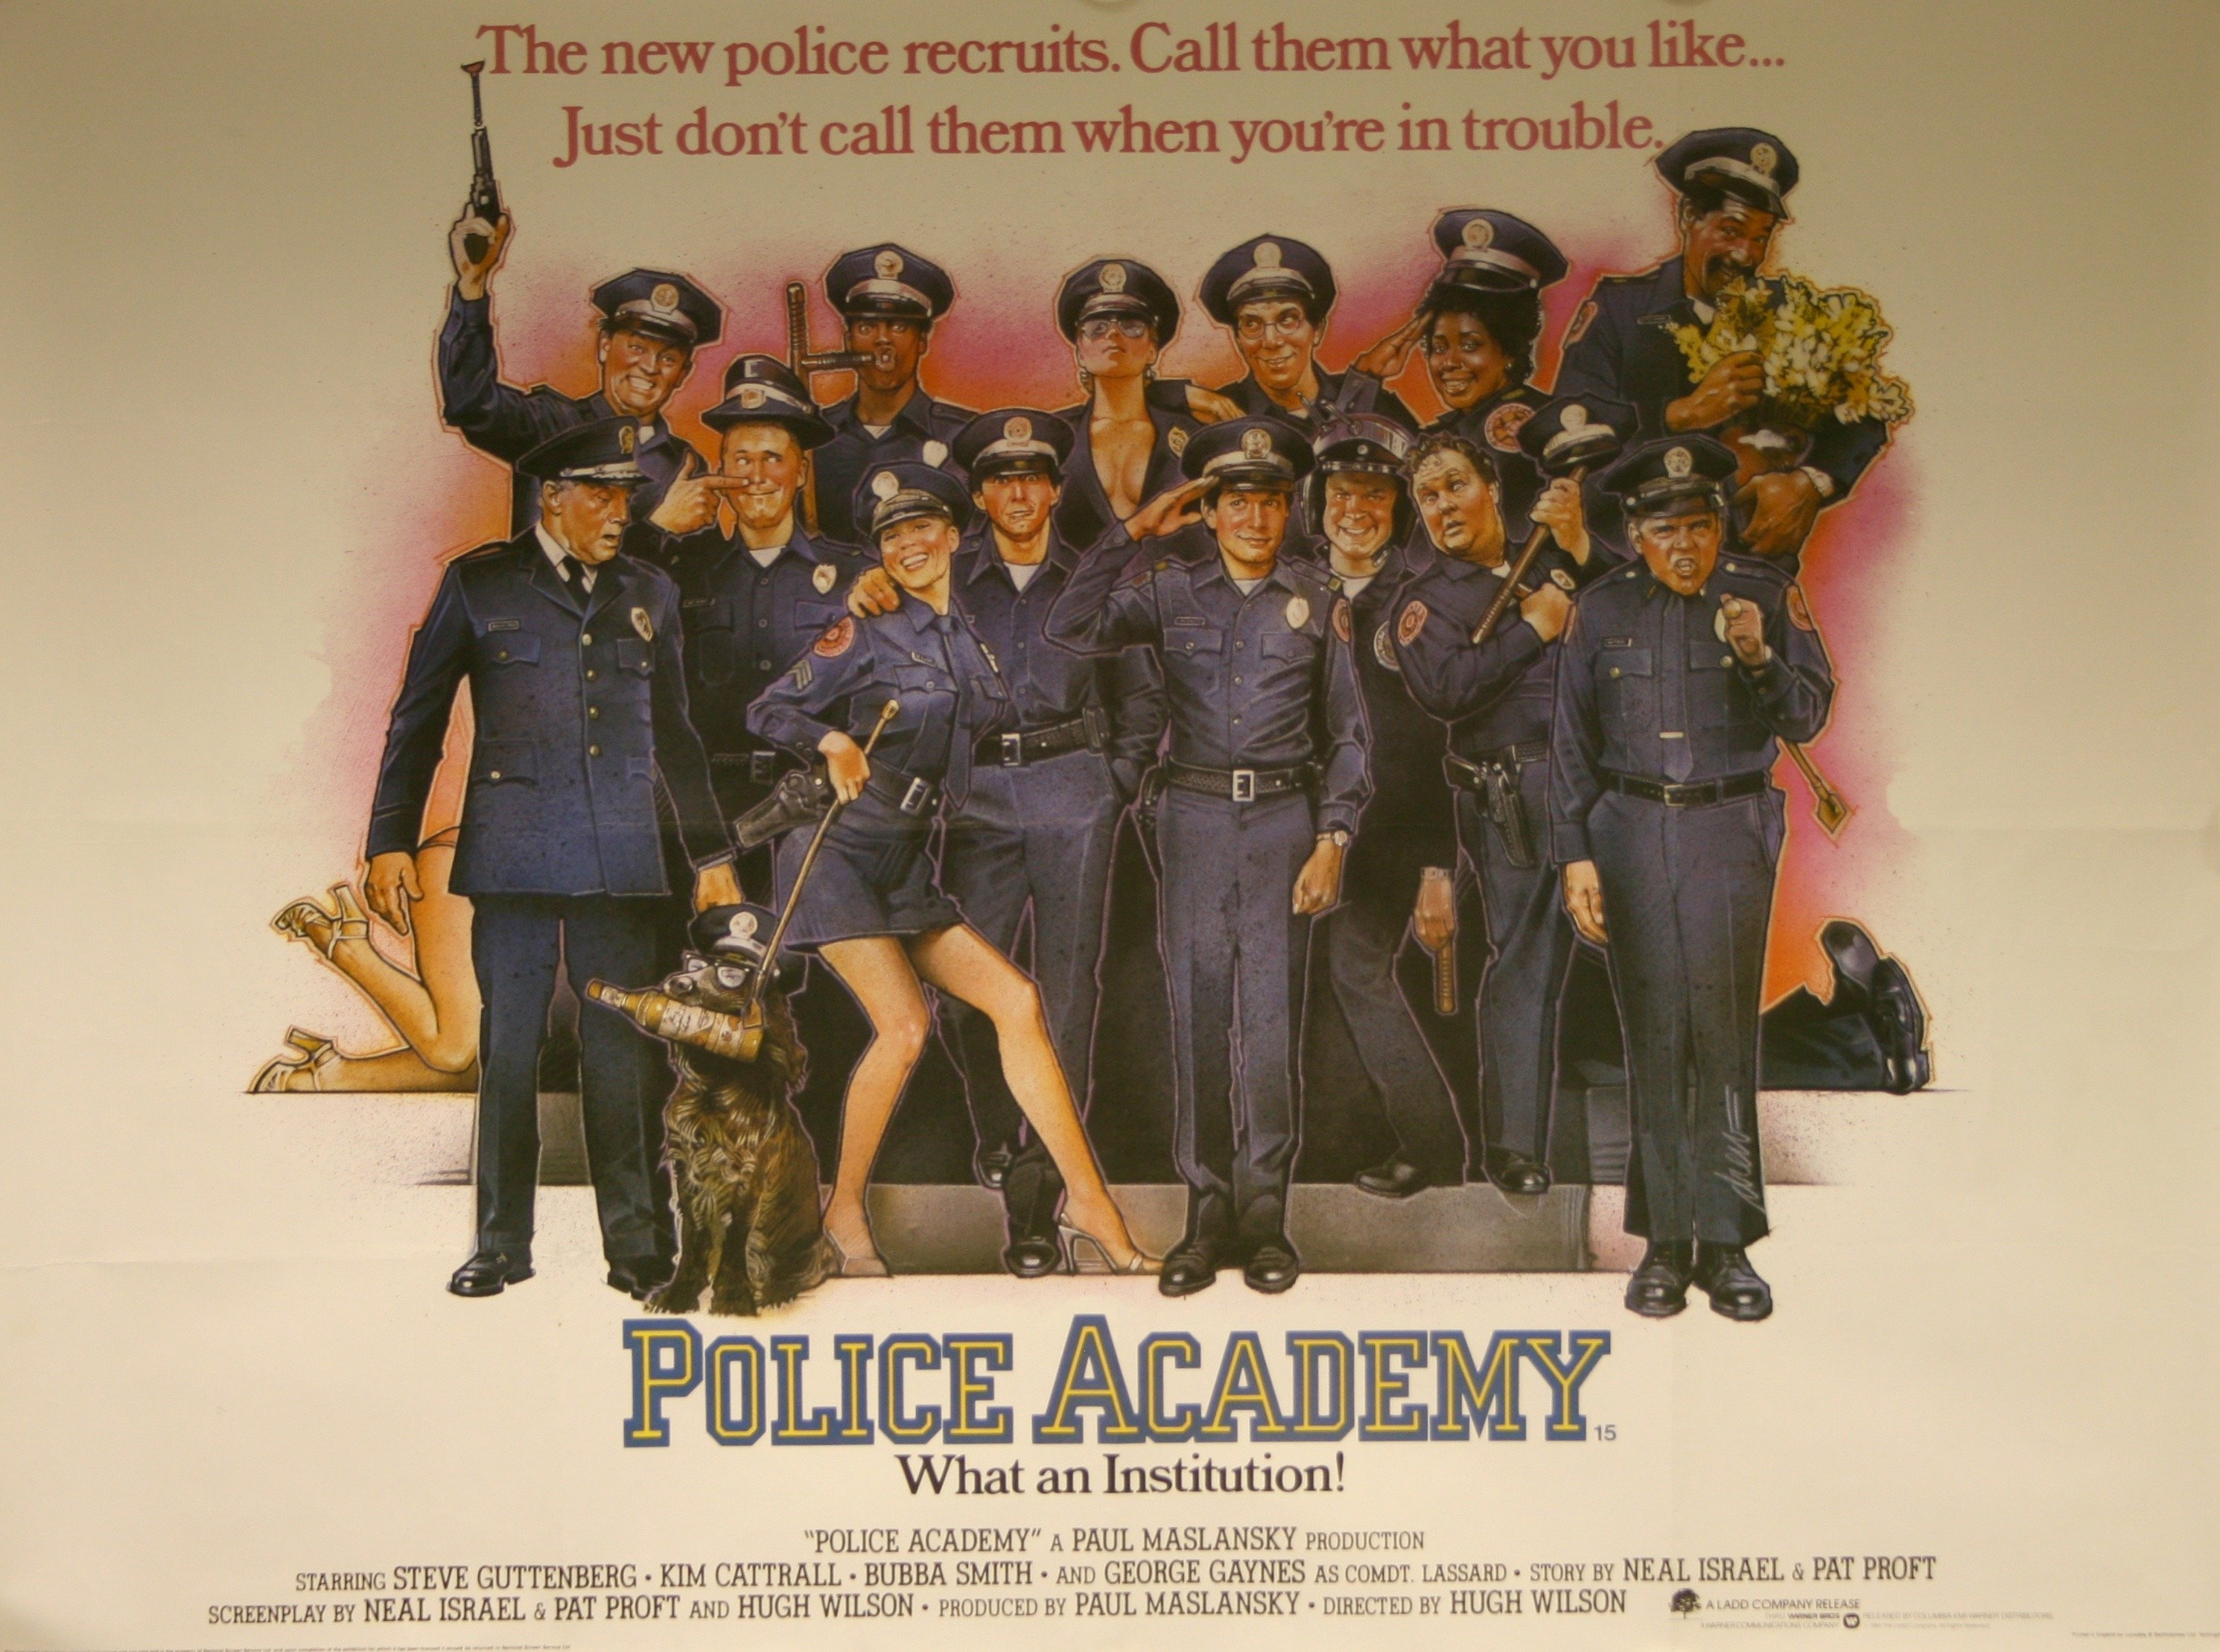 1987 movie poster for Police Academy